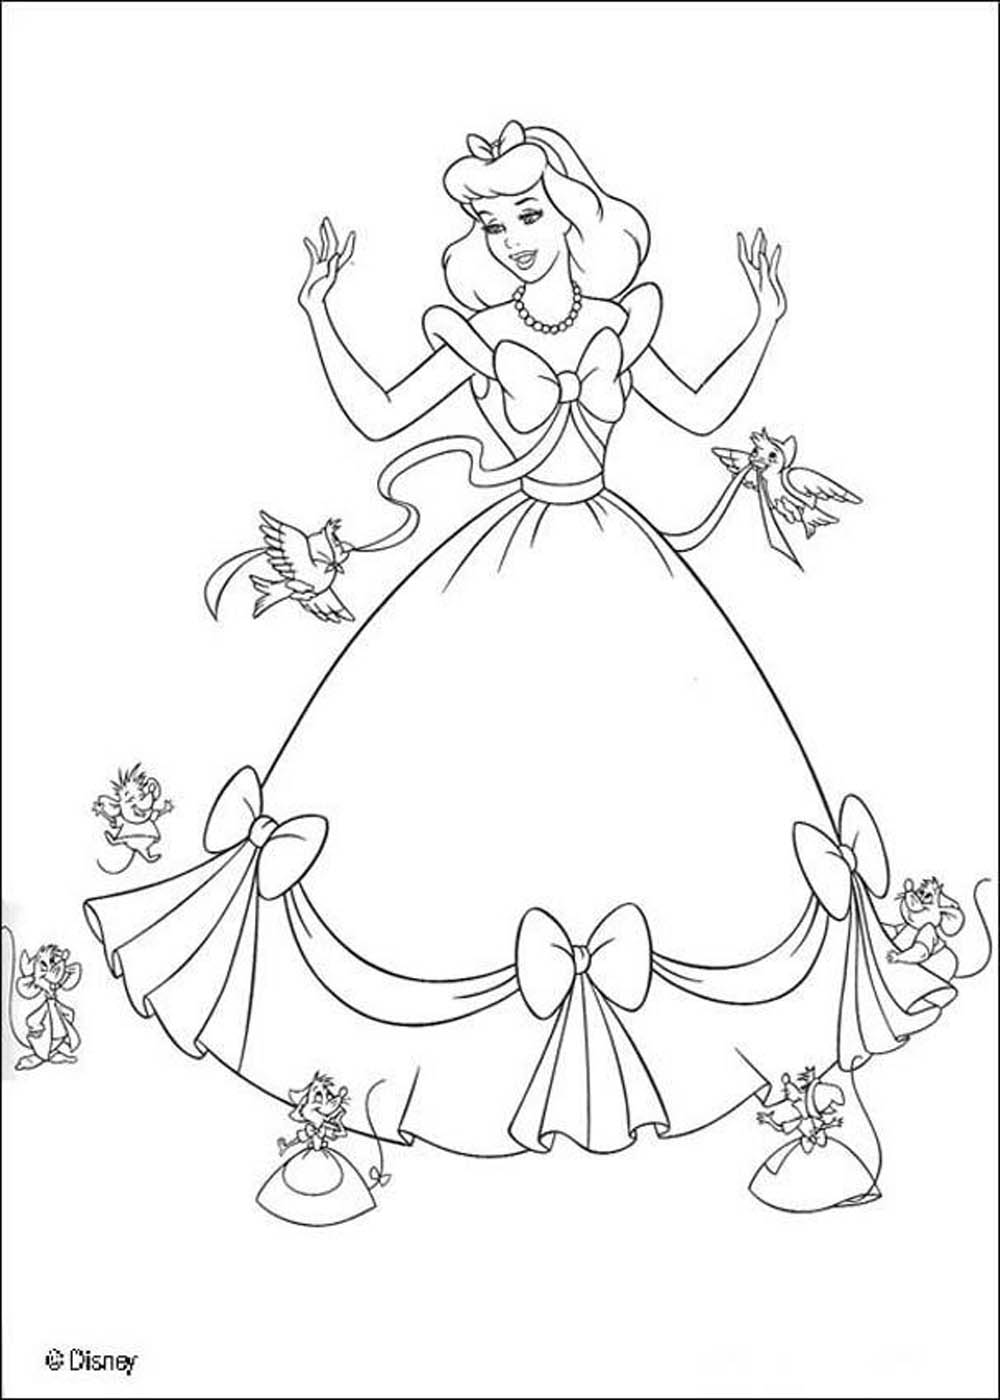 cinderella drawing for coloring princess cinderella coloring pages ideas coloring drawing cinderella for